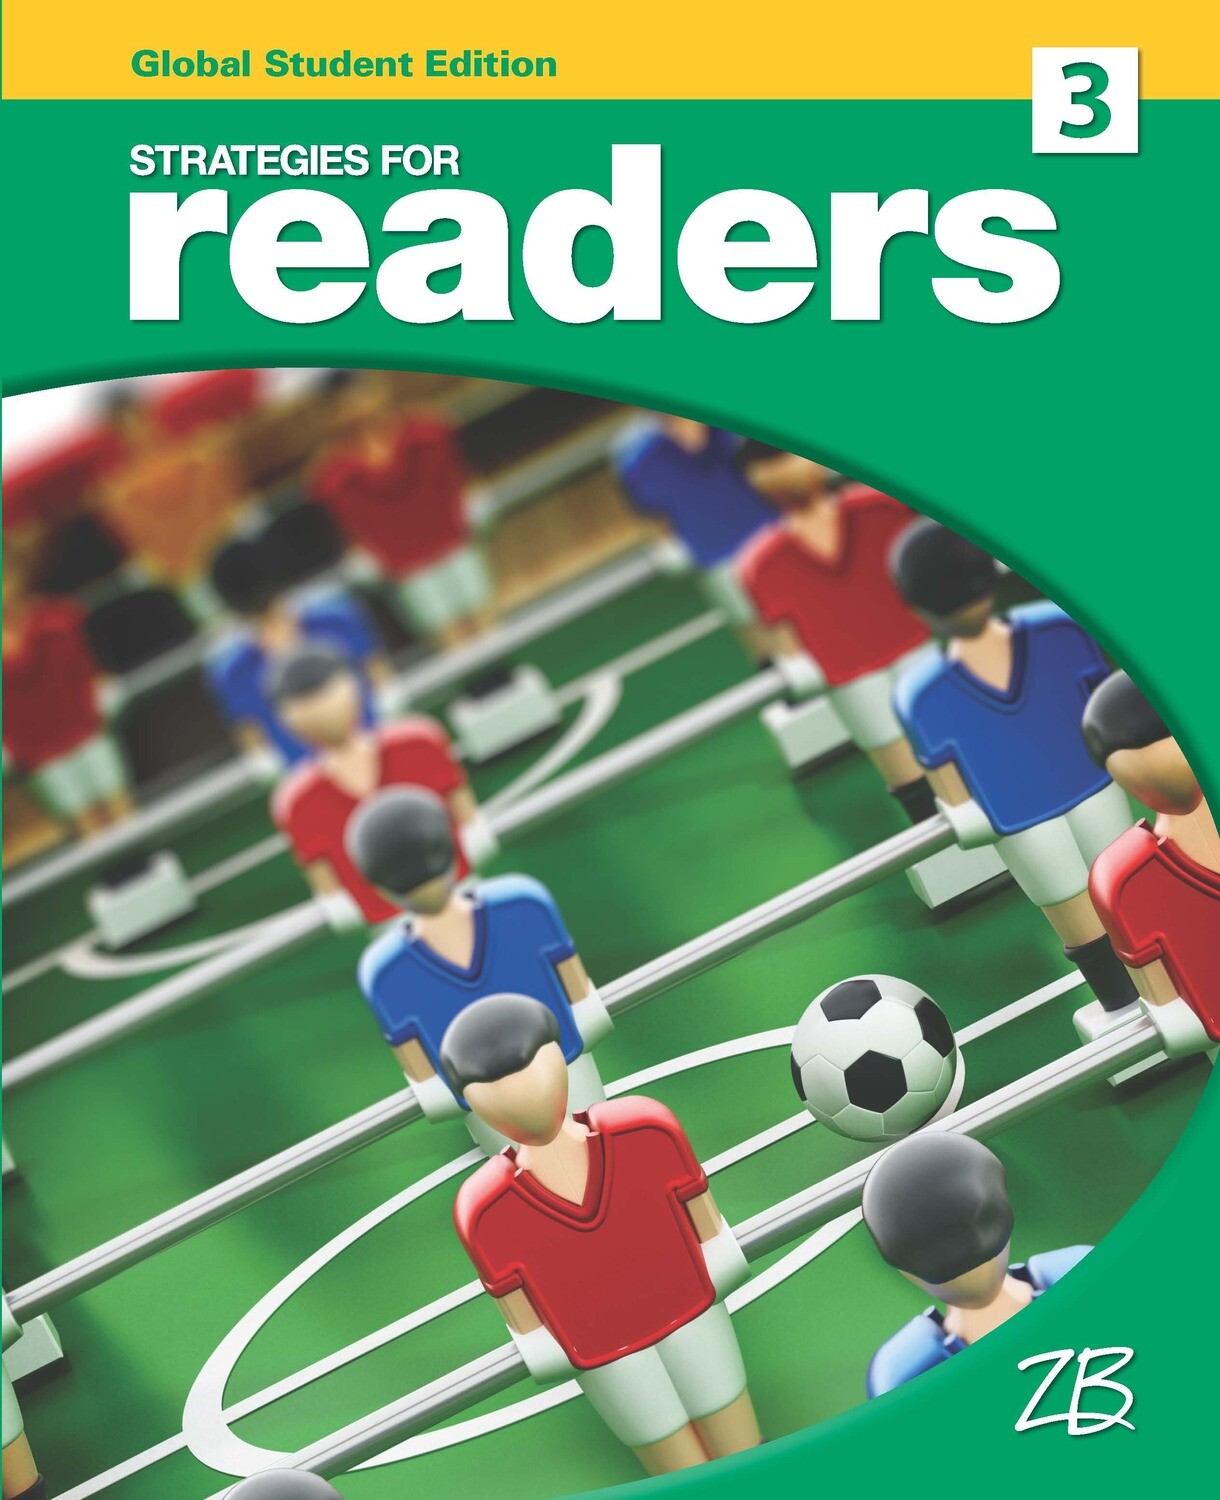 TERCERO - STRATEGIES FOR READERS 3 - ZB - 2016 - ISBN 9781630143817